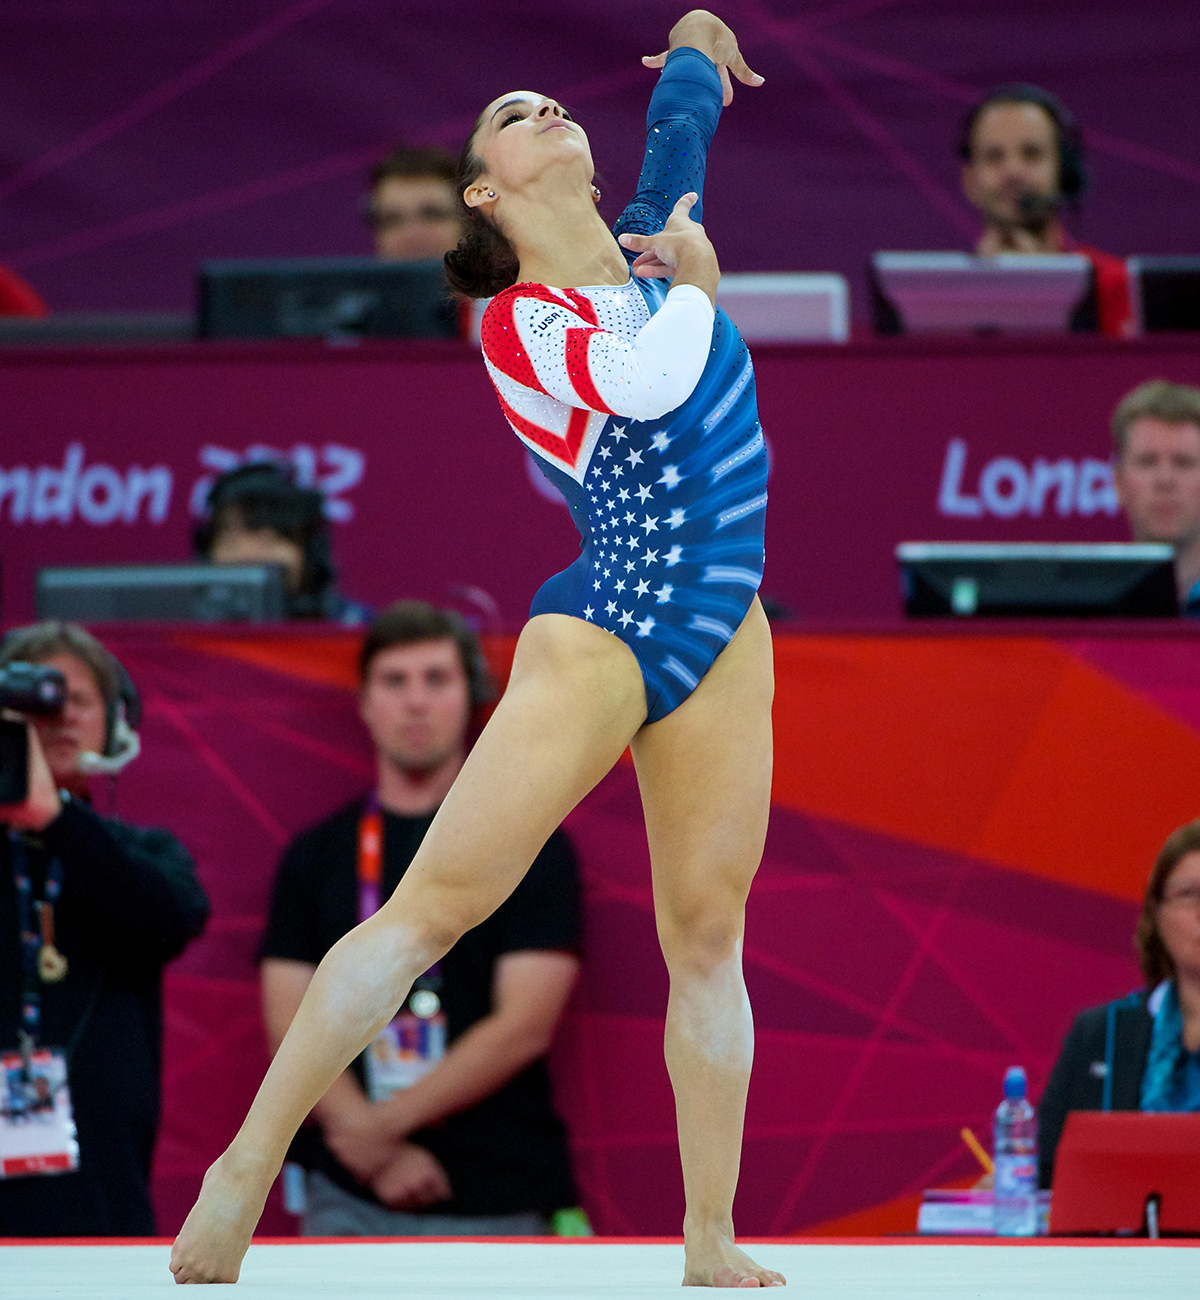 Photo by John Cheng/USA Gymnastics